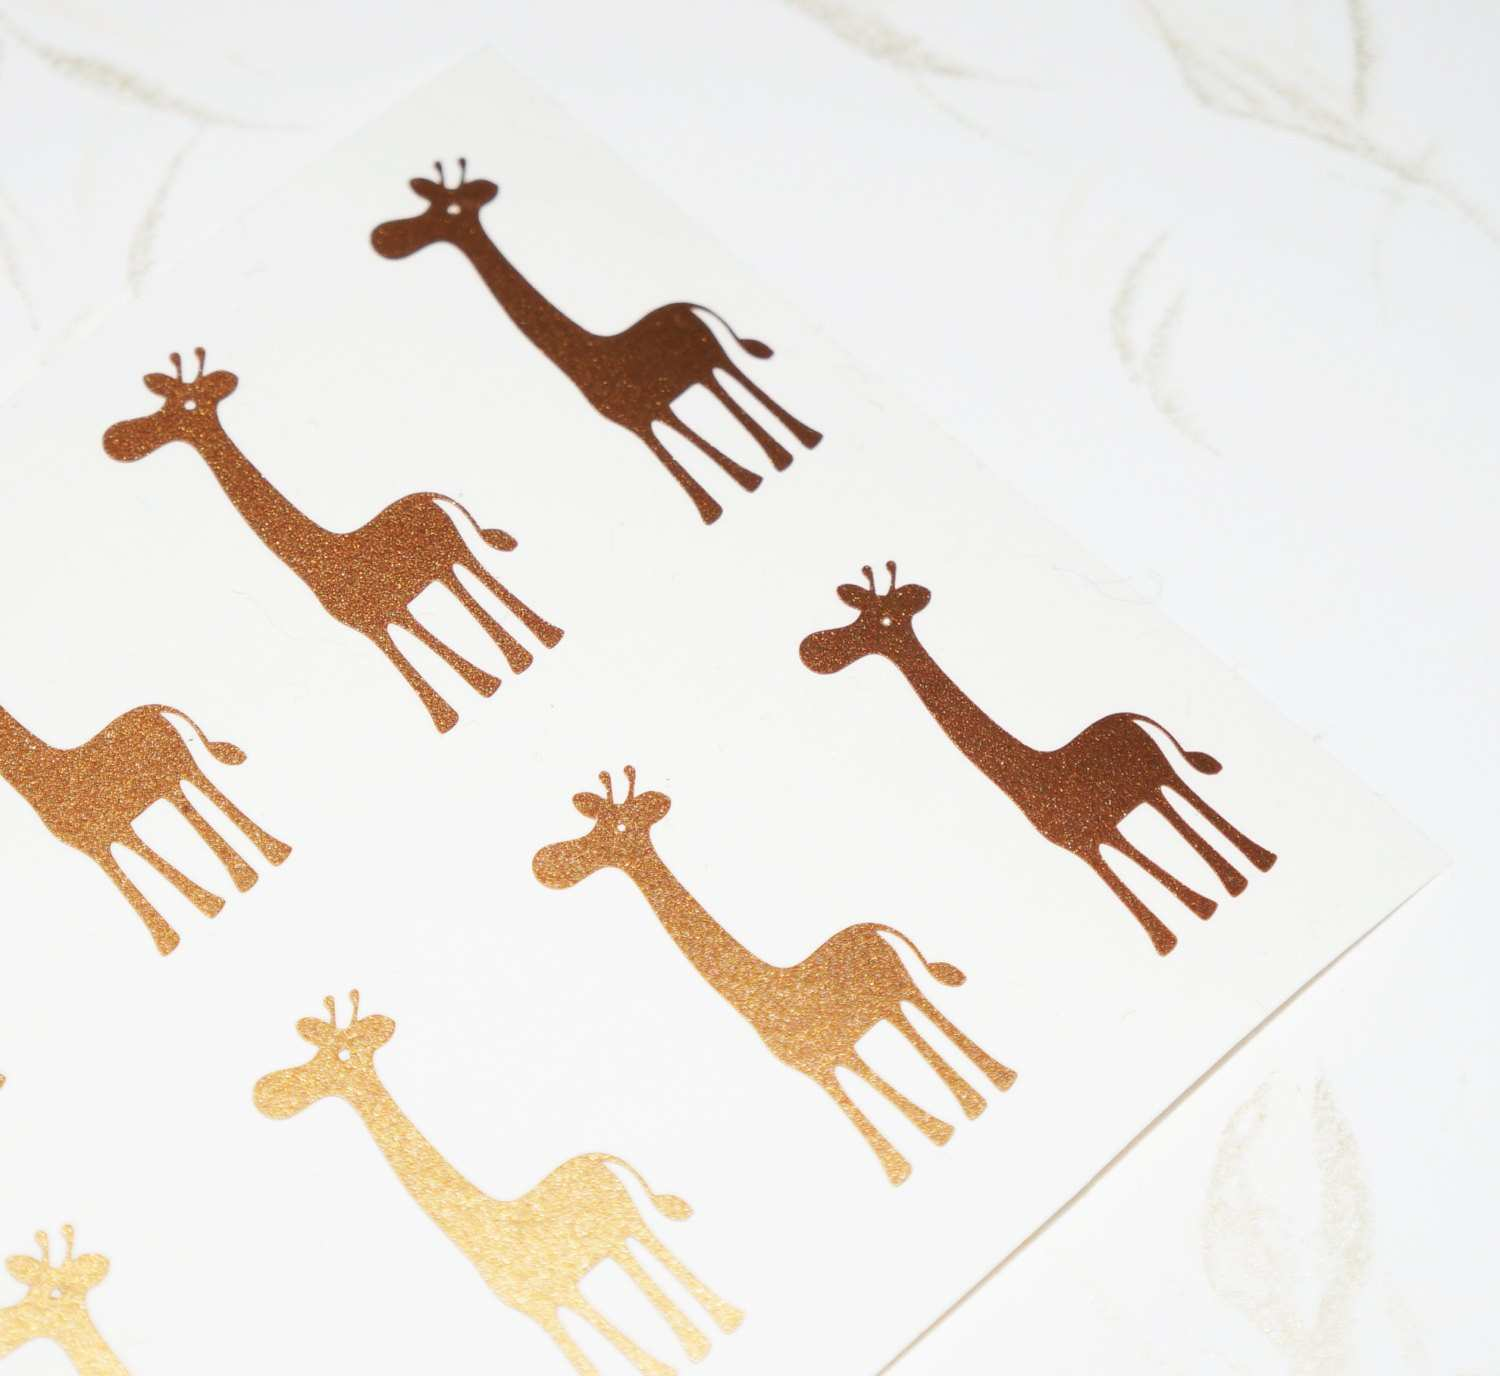 40 Giraffe Stickers Giraffe Wall Decal Animal Stickers Giraffe